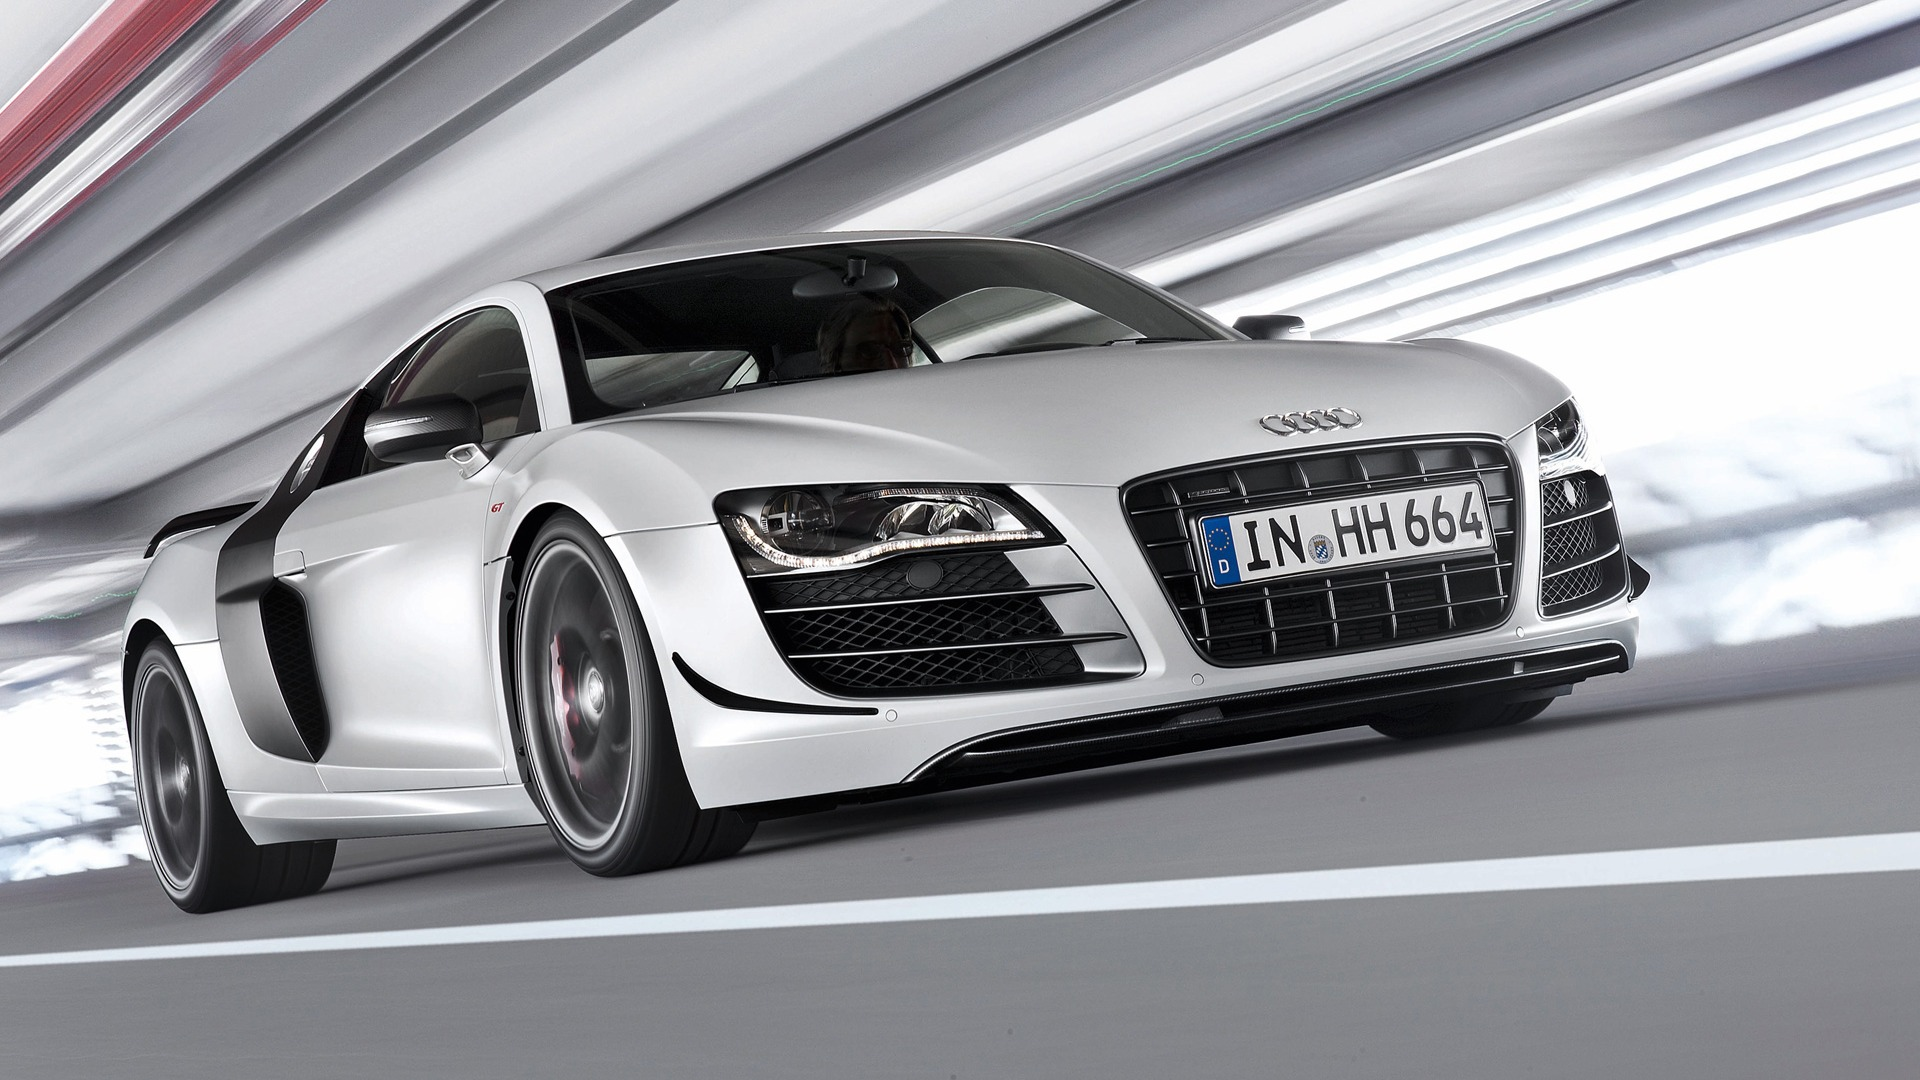 R8 GT   2010 HD wallpaper 2   1920x1080 Wallpaper Download   Audi R8 1920x1080